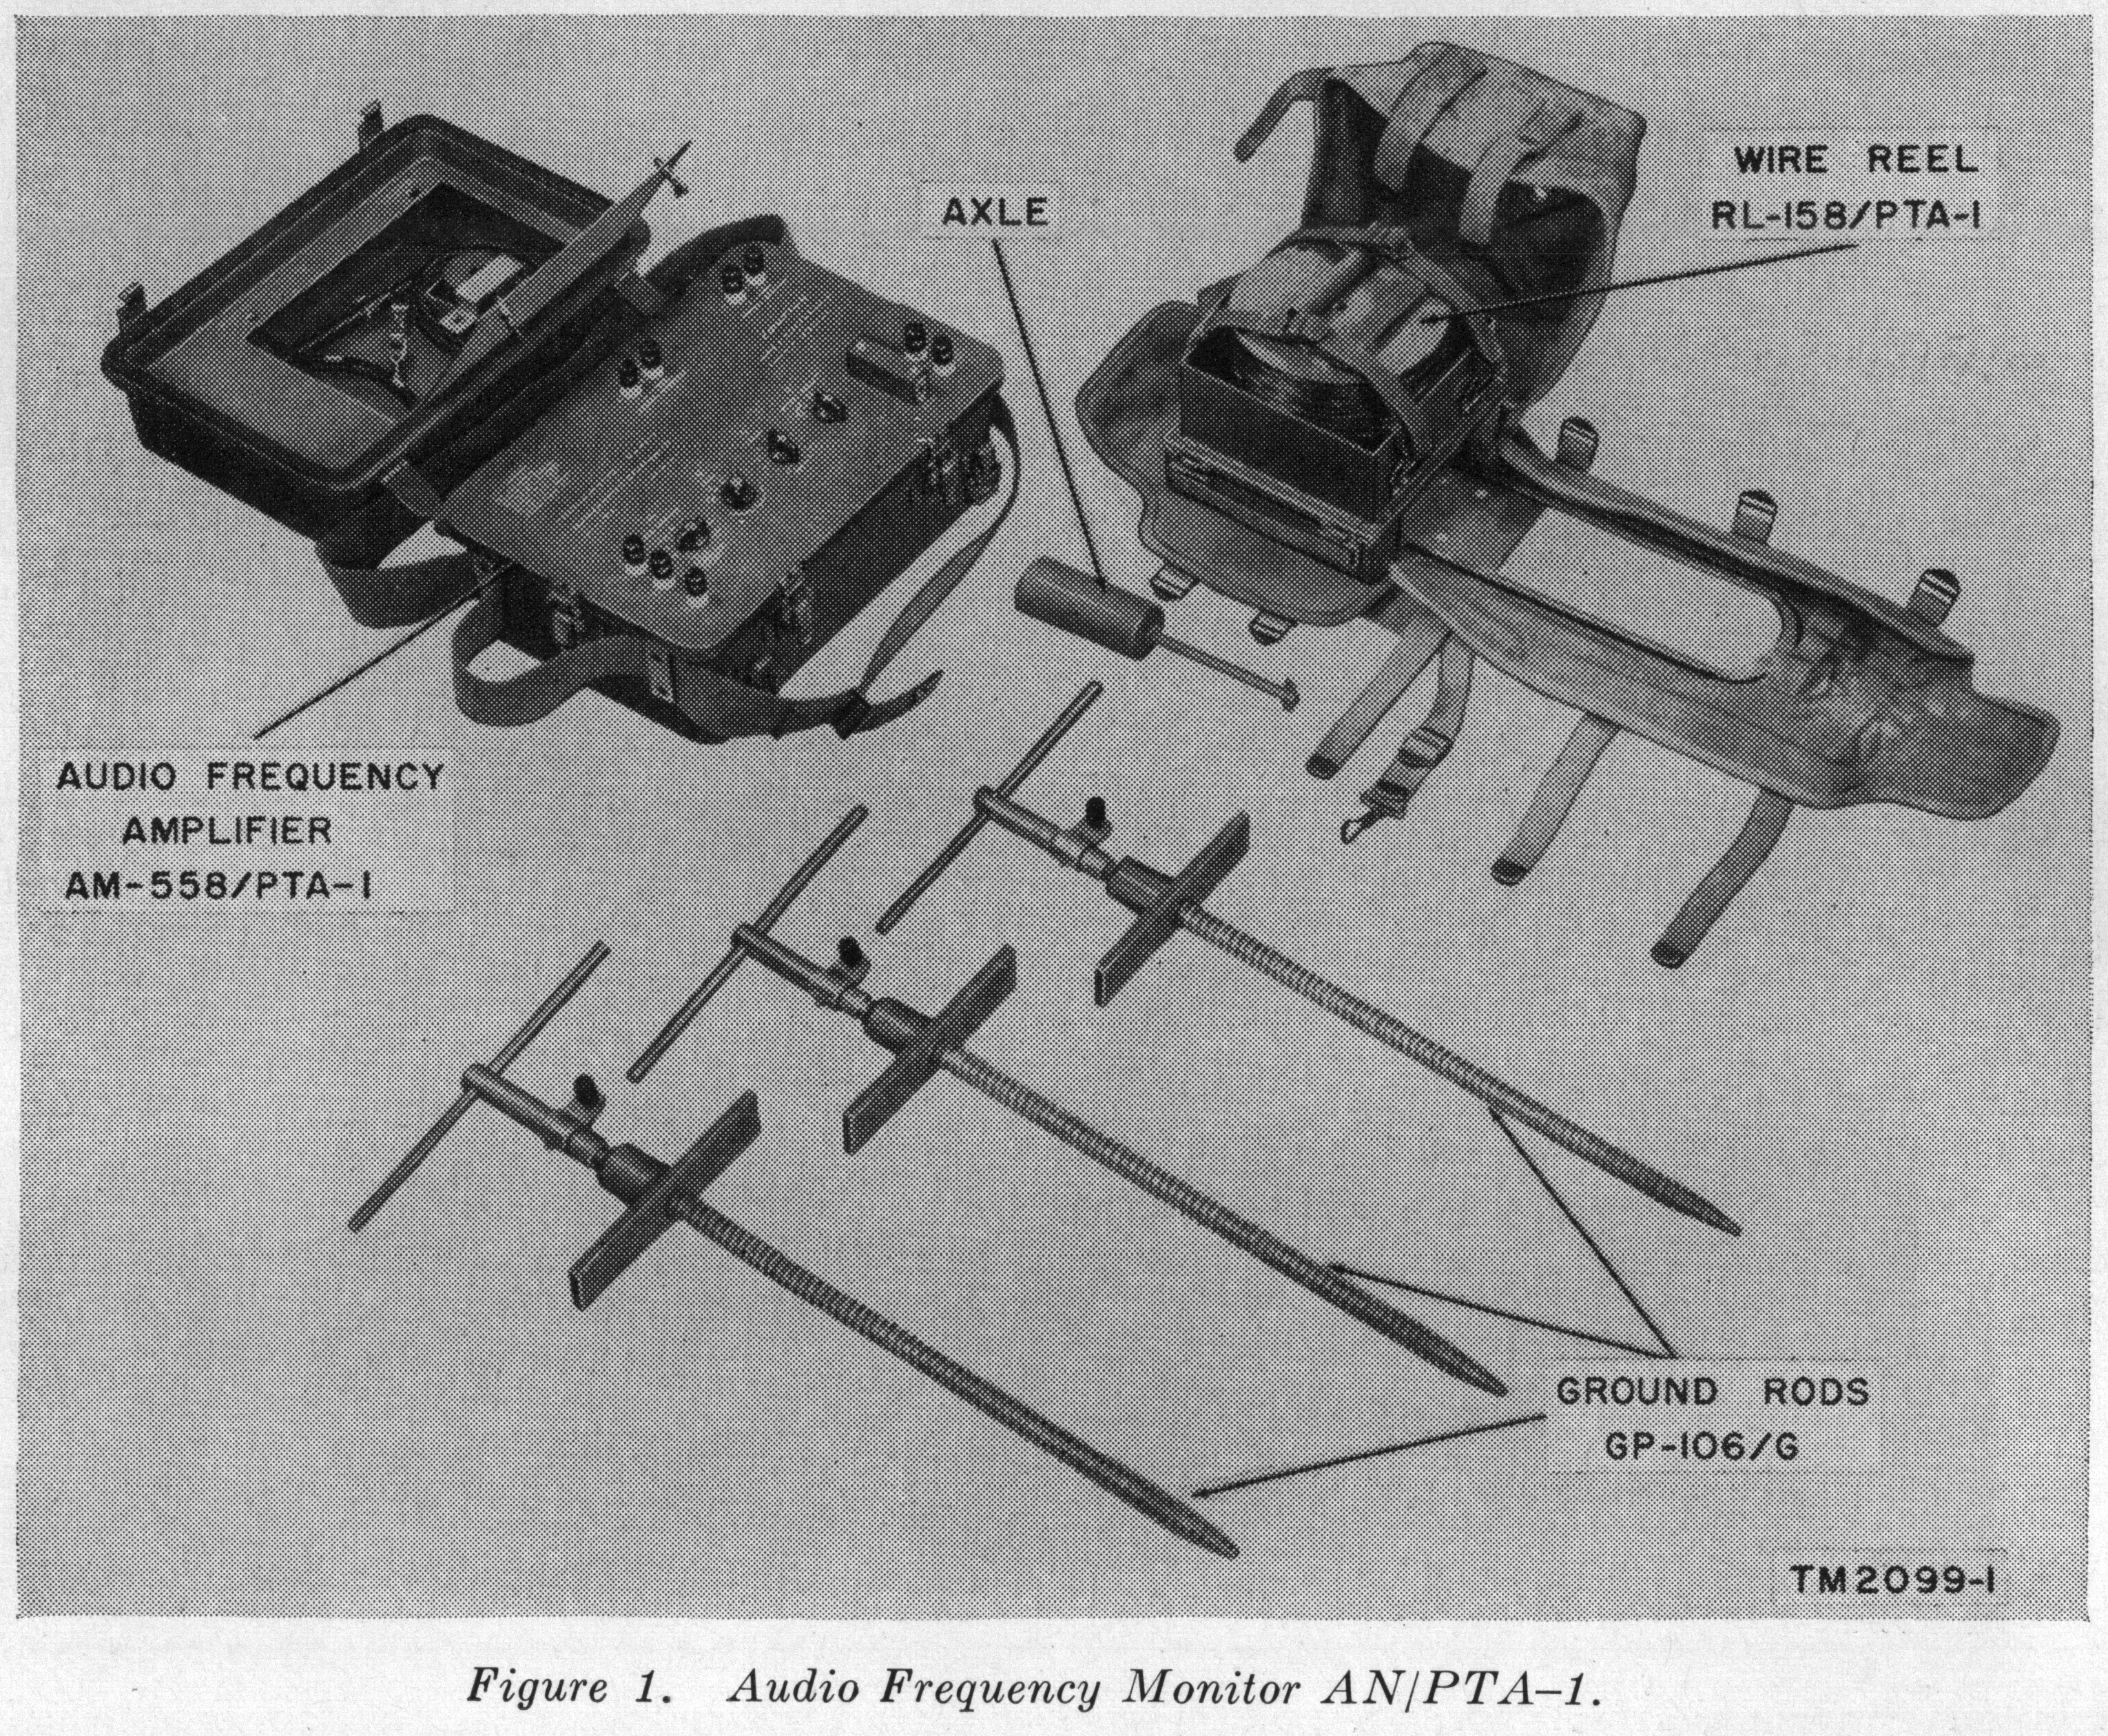 Audio Frequency Monitor AN/PTA-1.